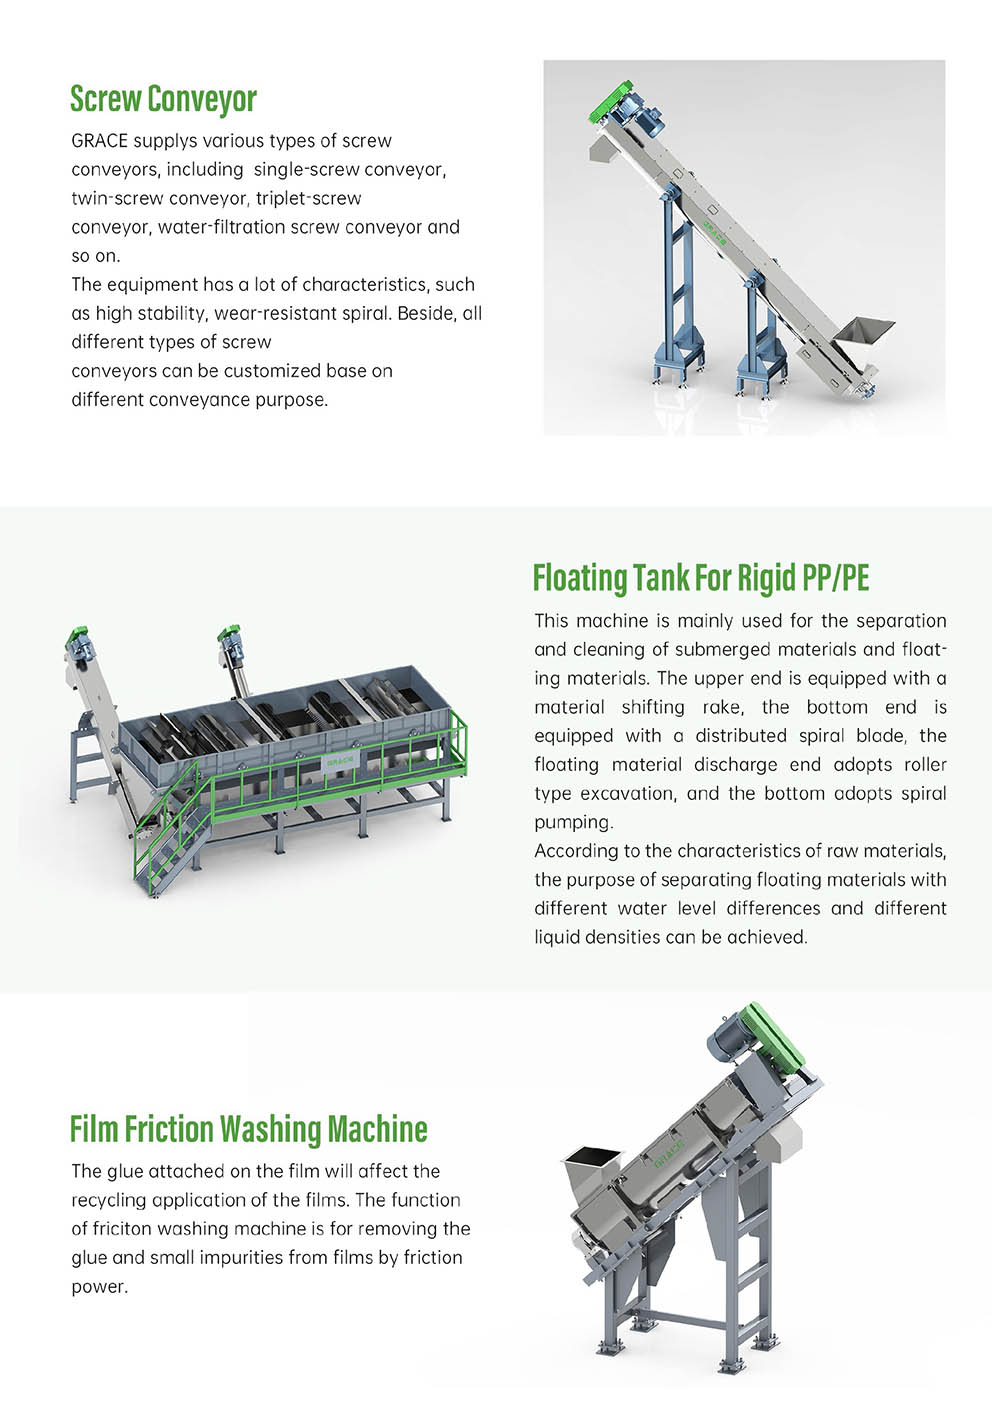 PEPP Rigid Flakes And Film Materials Washing Line5